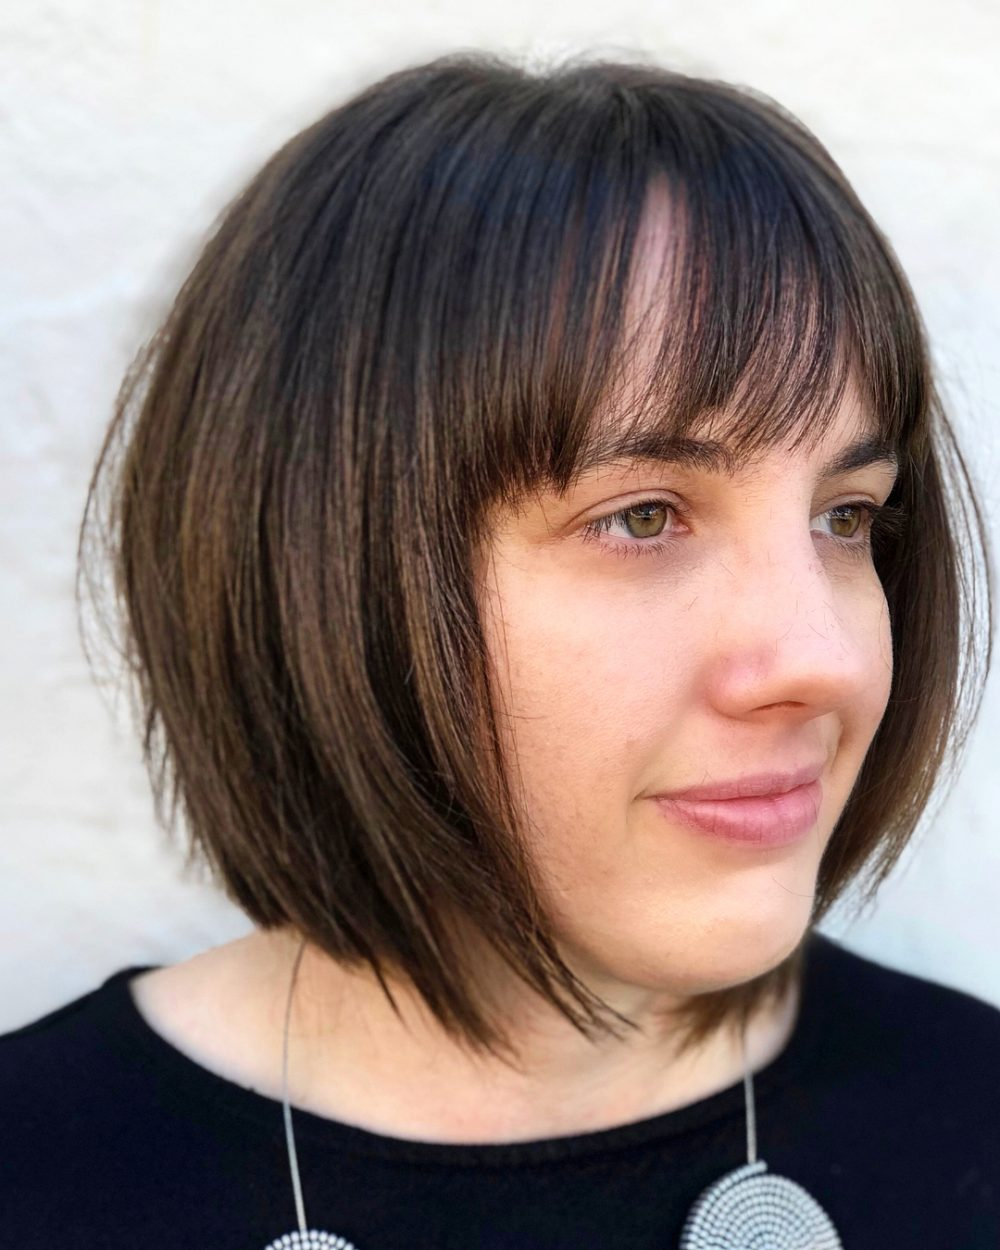 Edgy Deconstructed Bob hairstyle